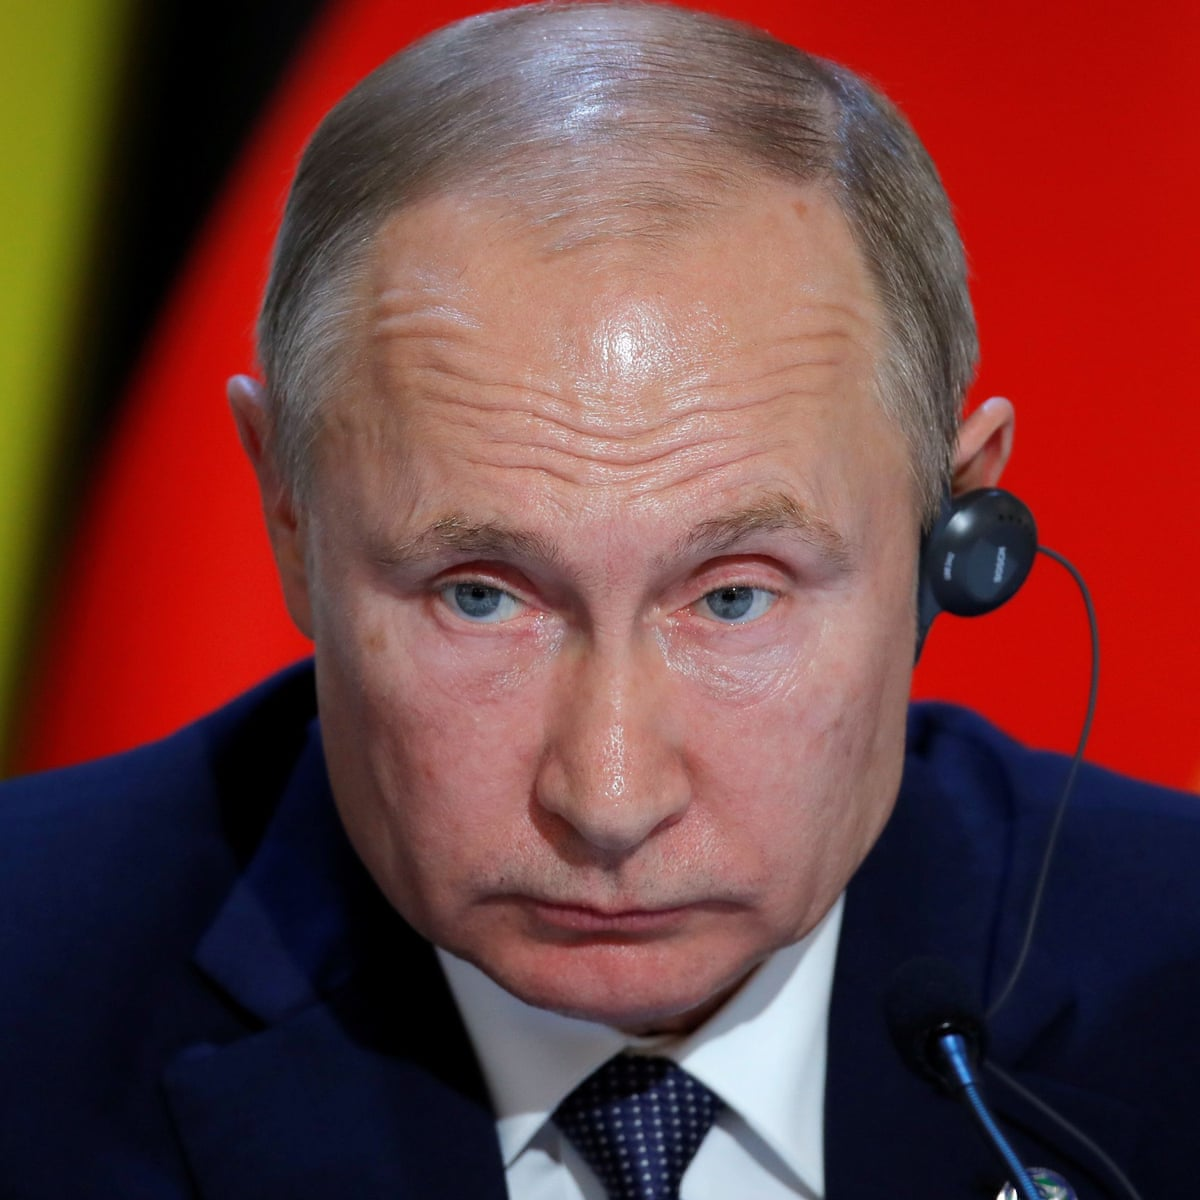 Vladimir Putin Signals Russia Will Appeal Against Four Year Wada Ban Russia Doping Scandal The Guardian